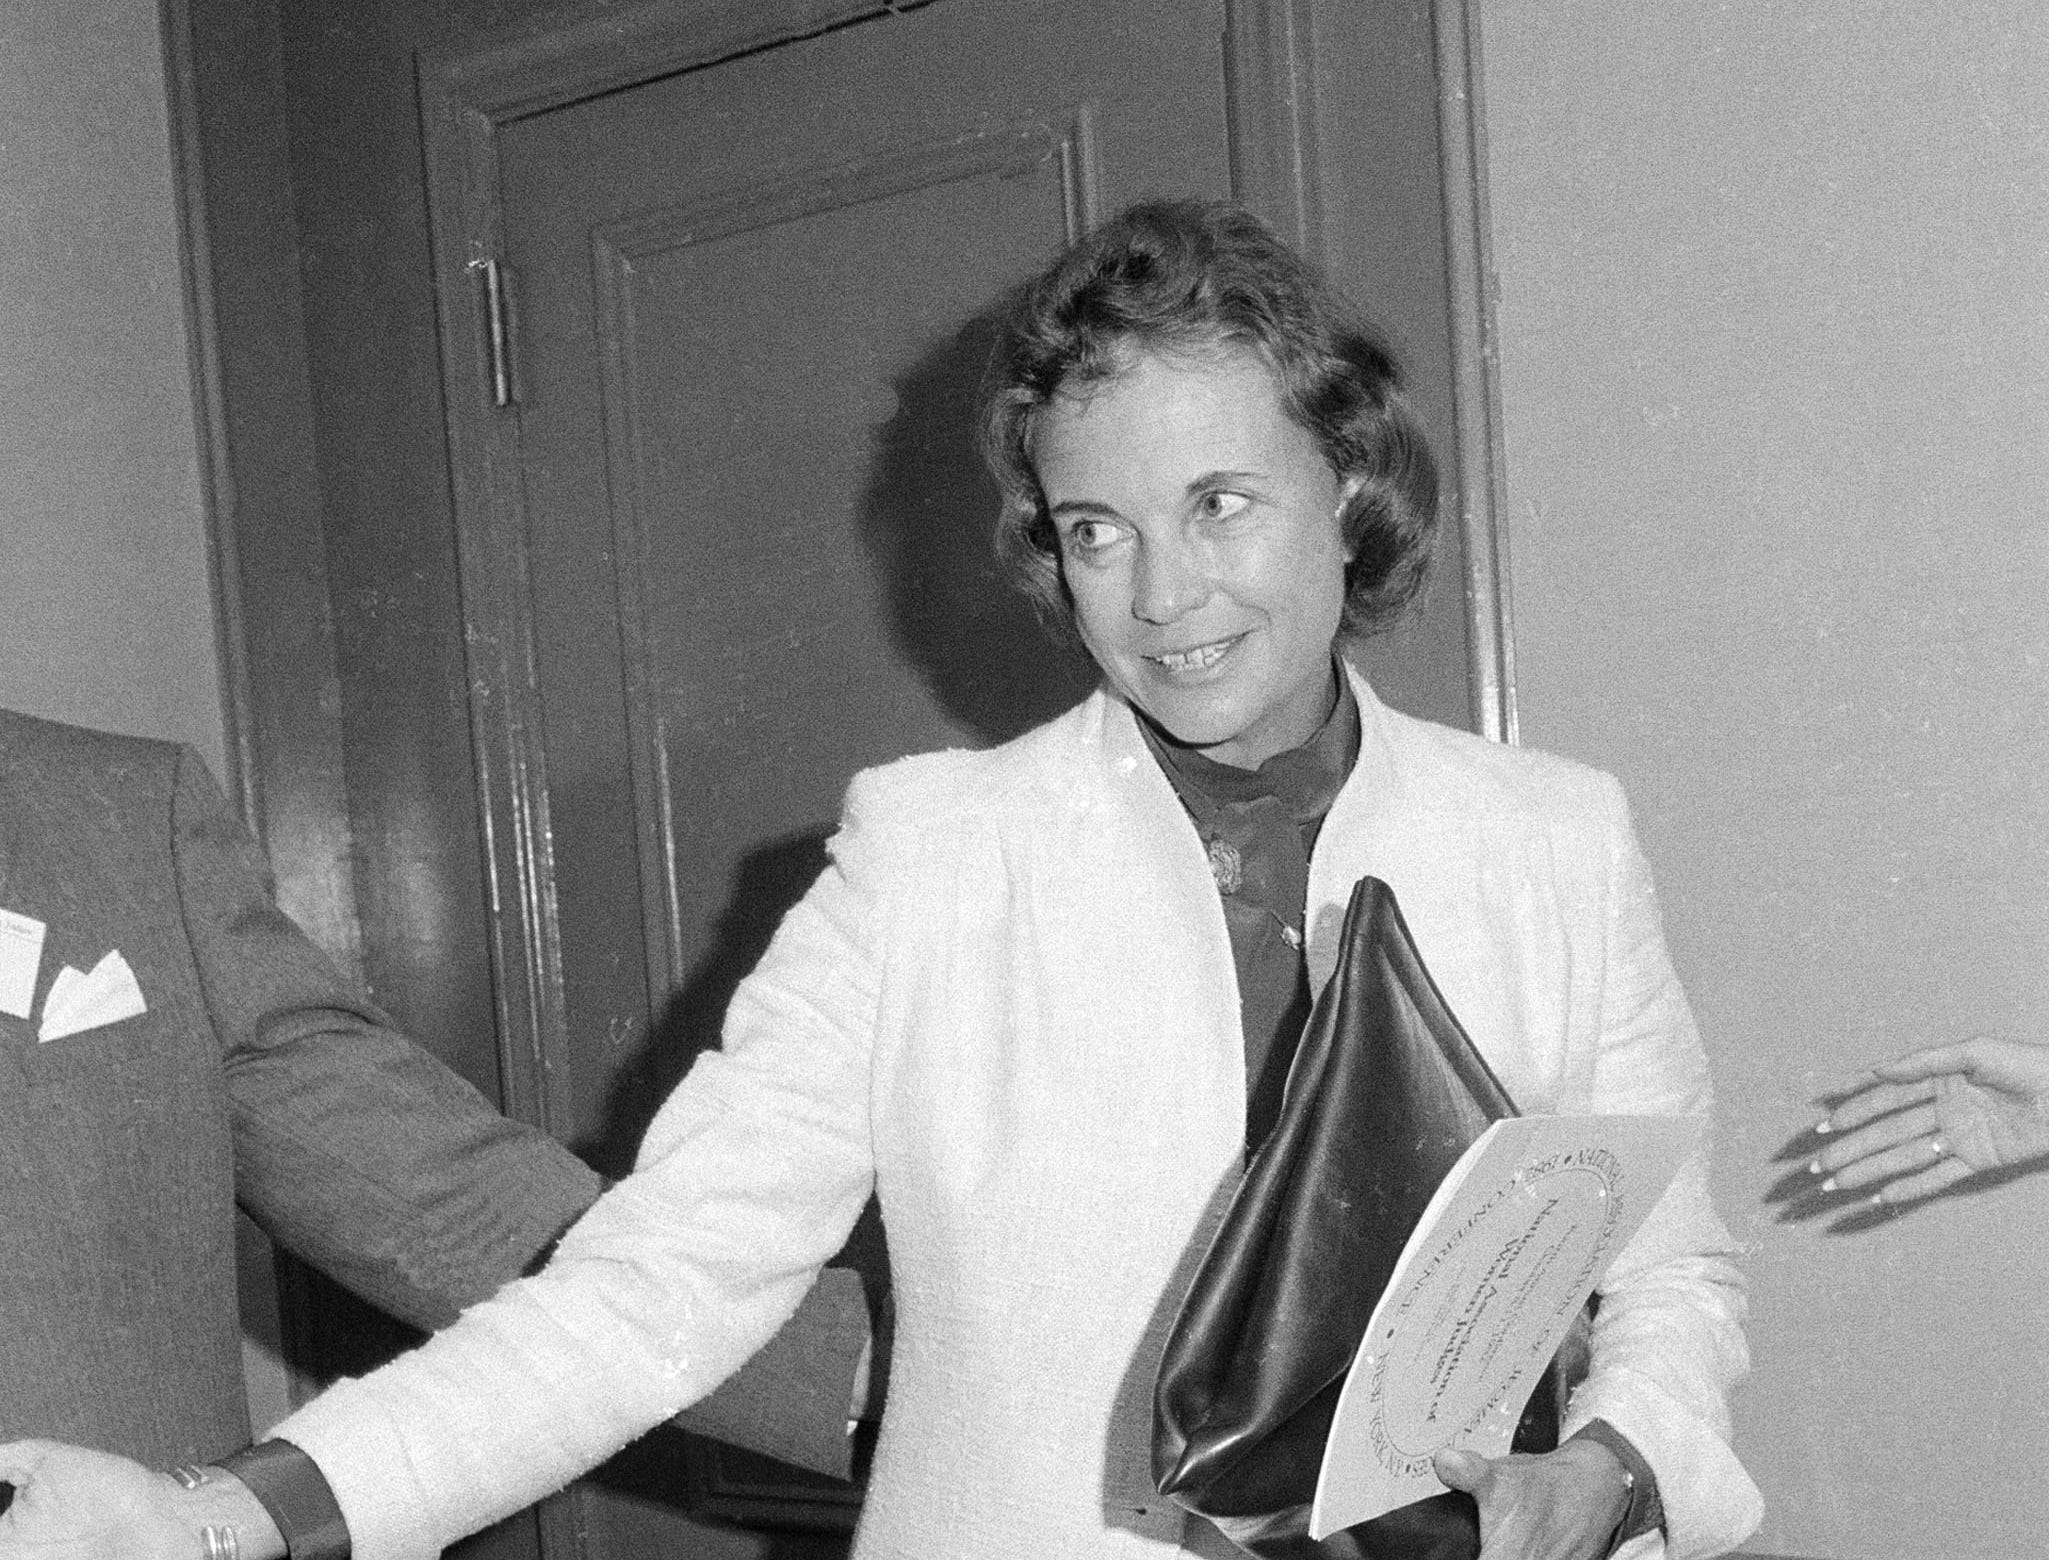 U.S. Supreme Court Justice Sandra Day O'Connor has her hands full as she arrives at the Fourth Annual National Association of Women Judges conference in New York, Oct. 9, 1982.